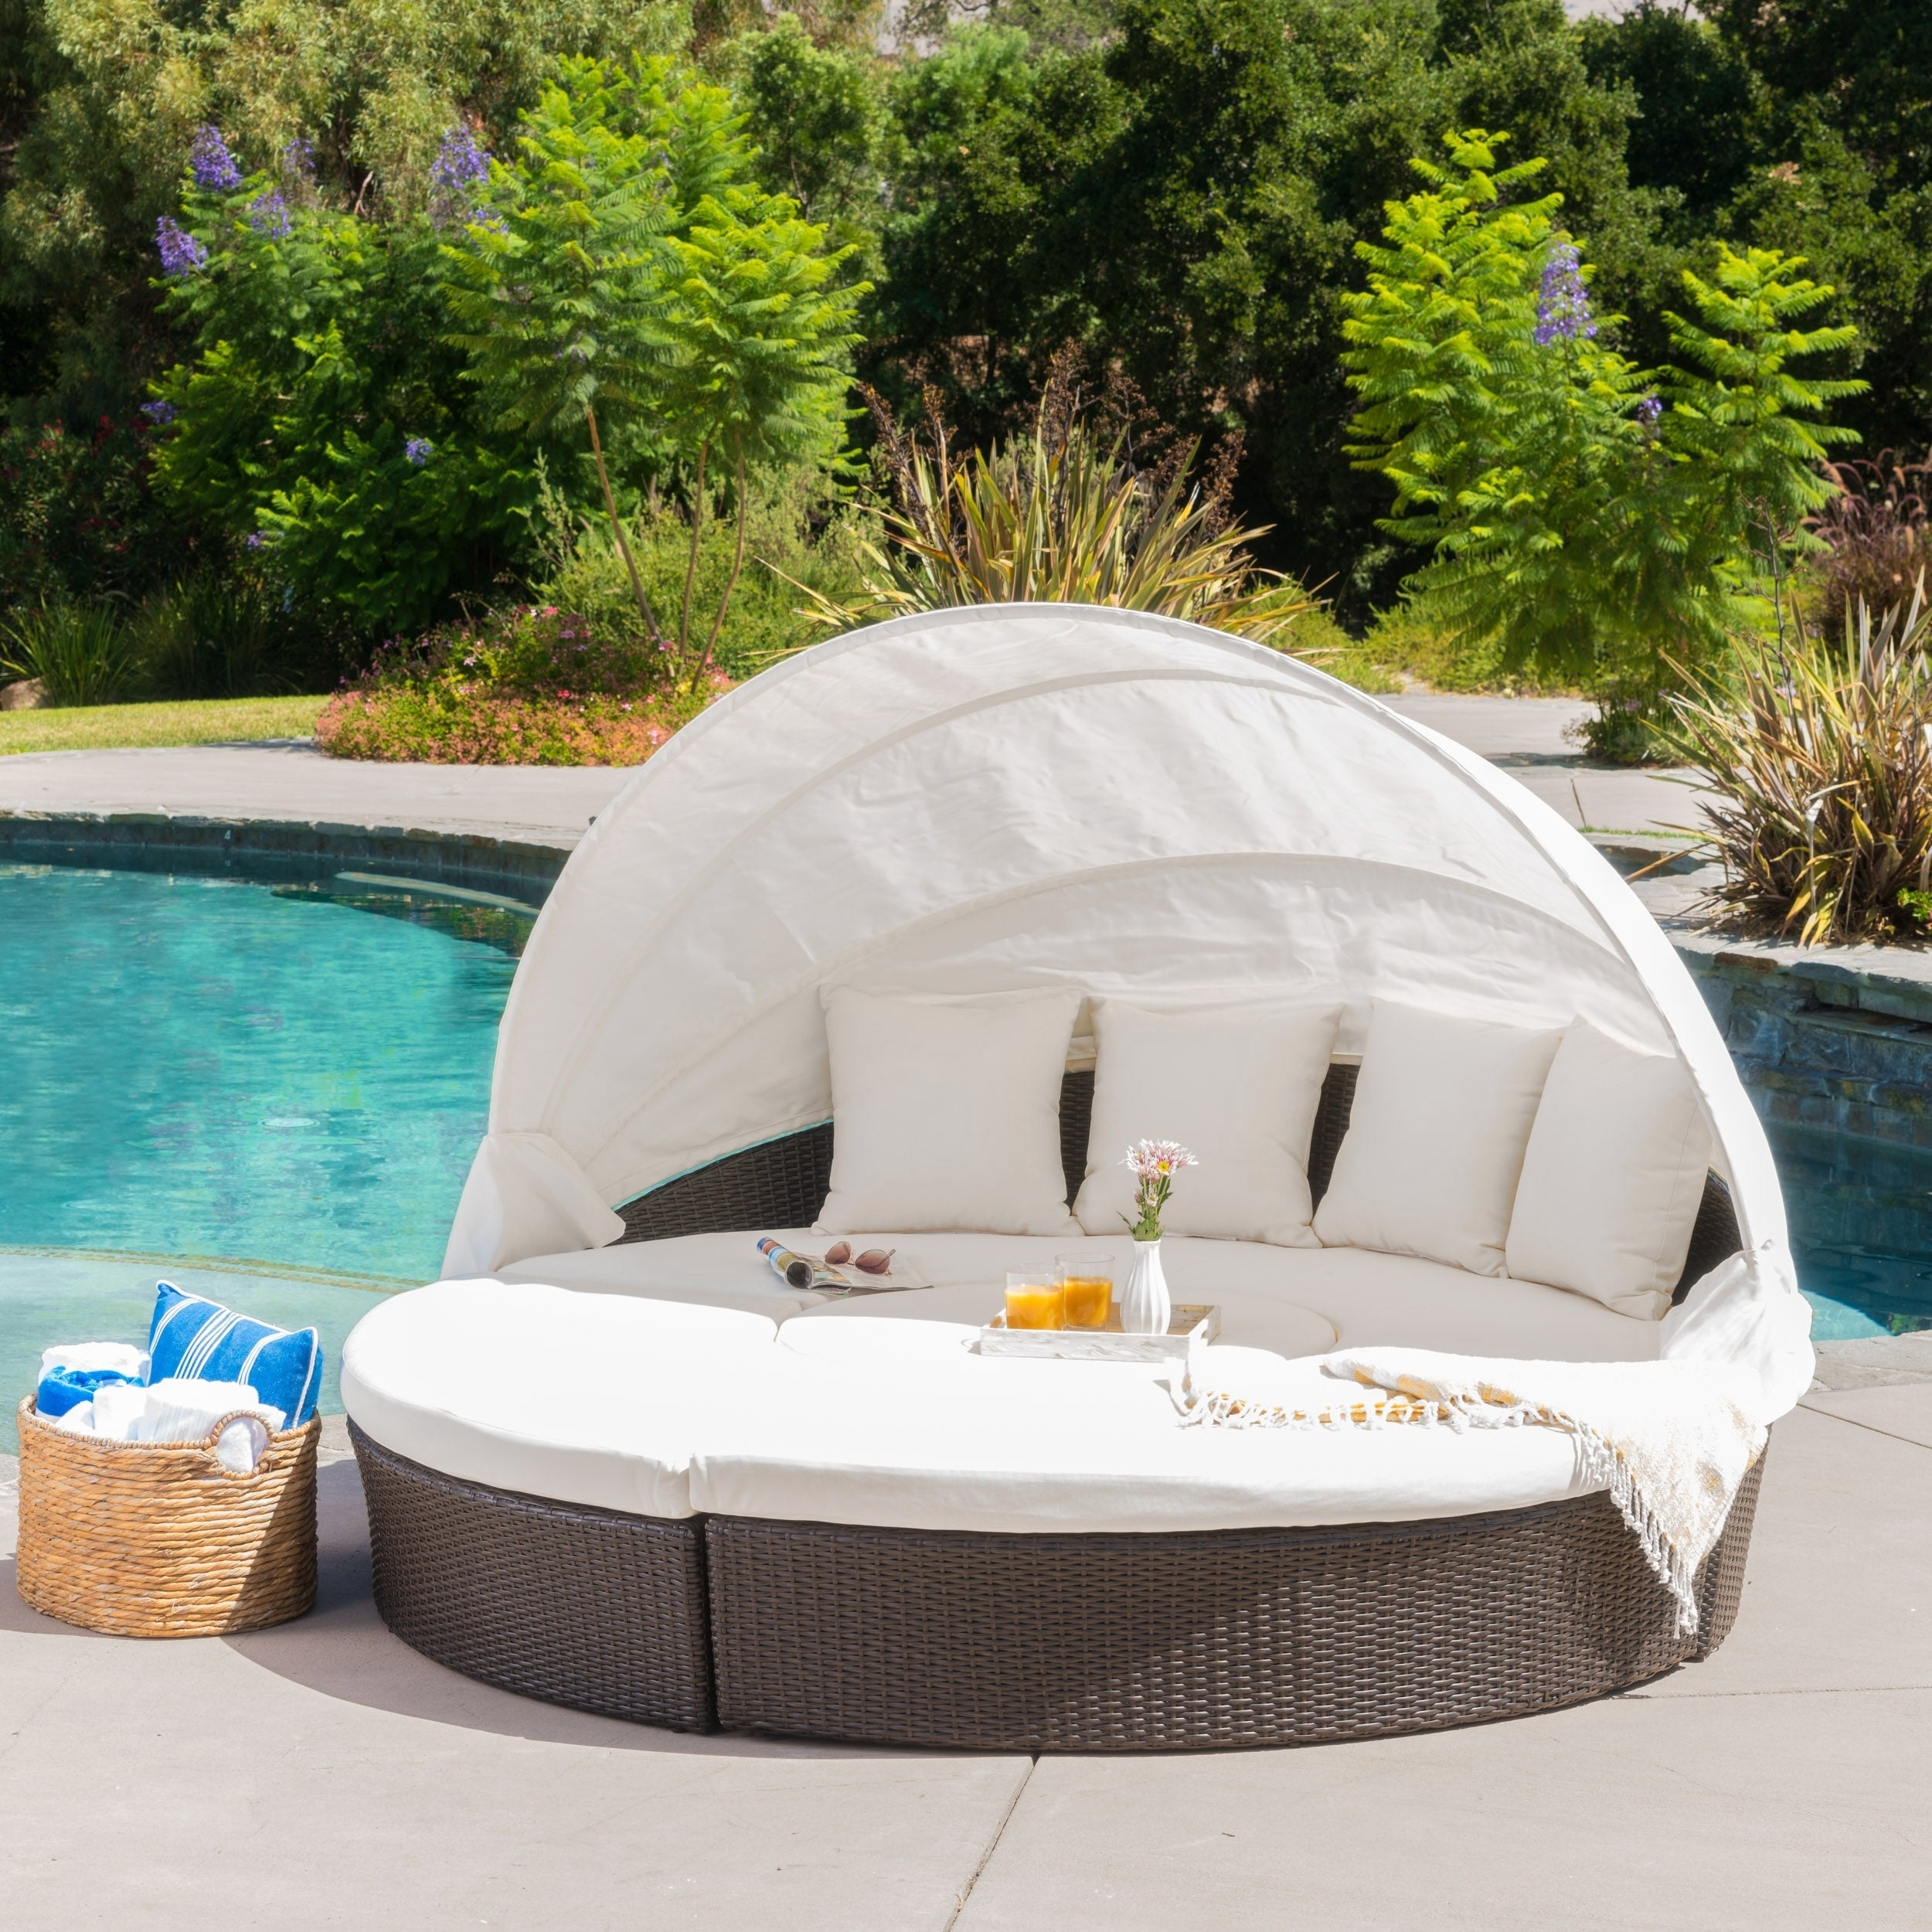 La Mesa Outdoor Aluminum Wicker Daybed with Ice Bucket by Christopher Knight Home f0 4b60 42eb abdb 068c9f3b2d39